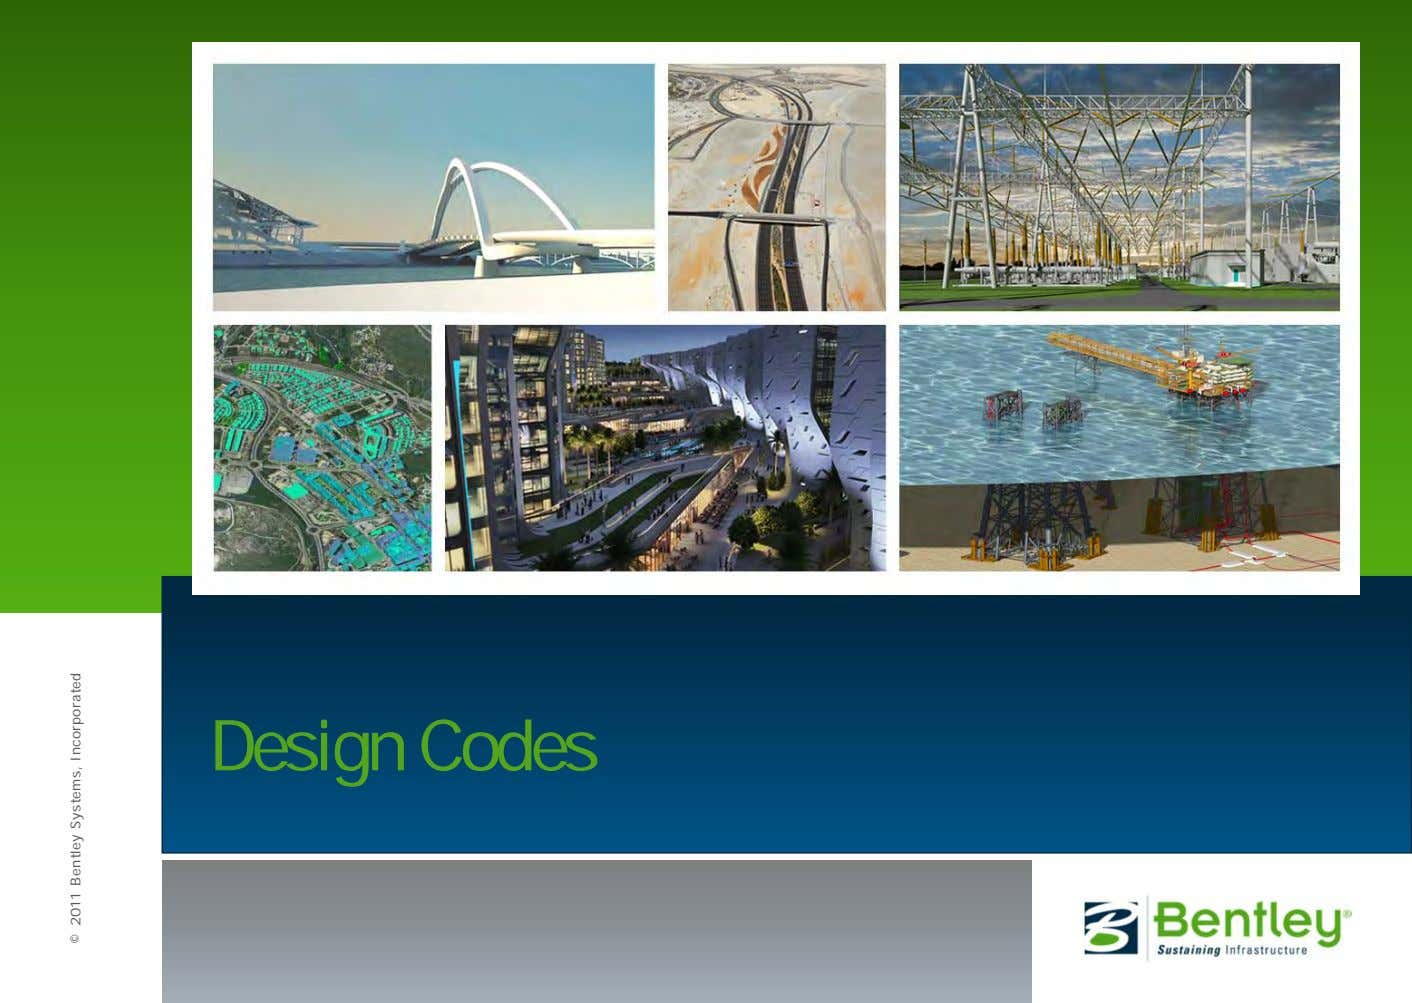 Design Codes © 2011 Bentley Systems, Incorporated